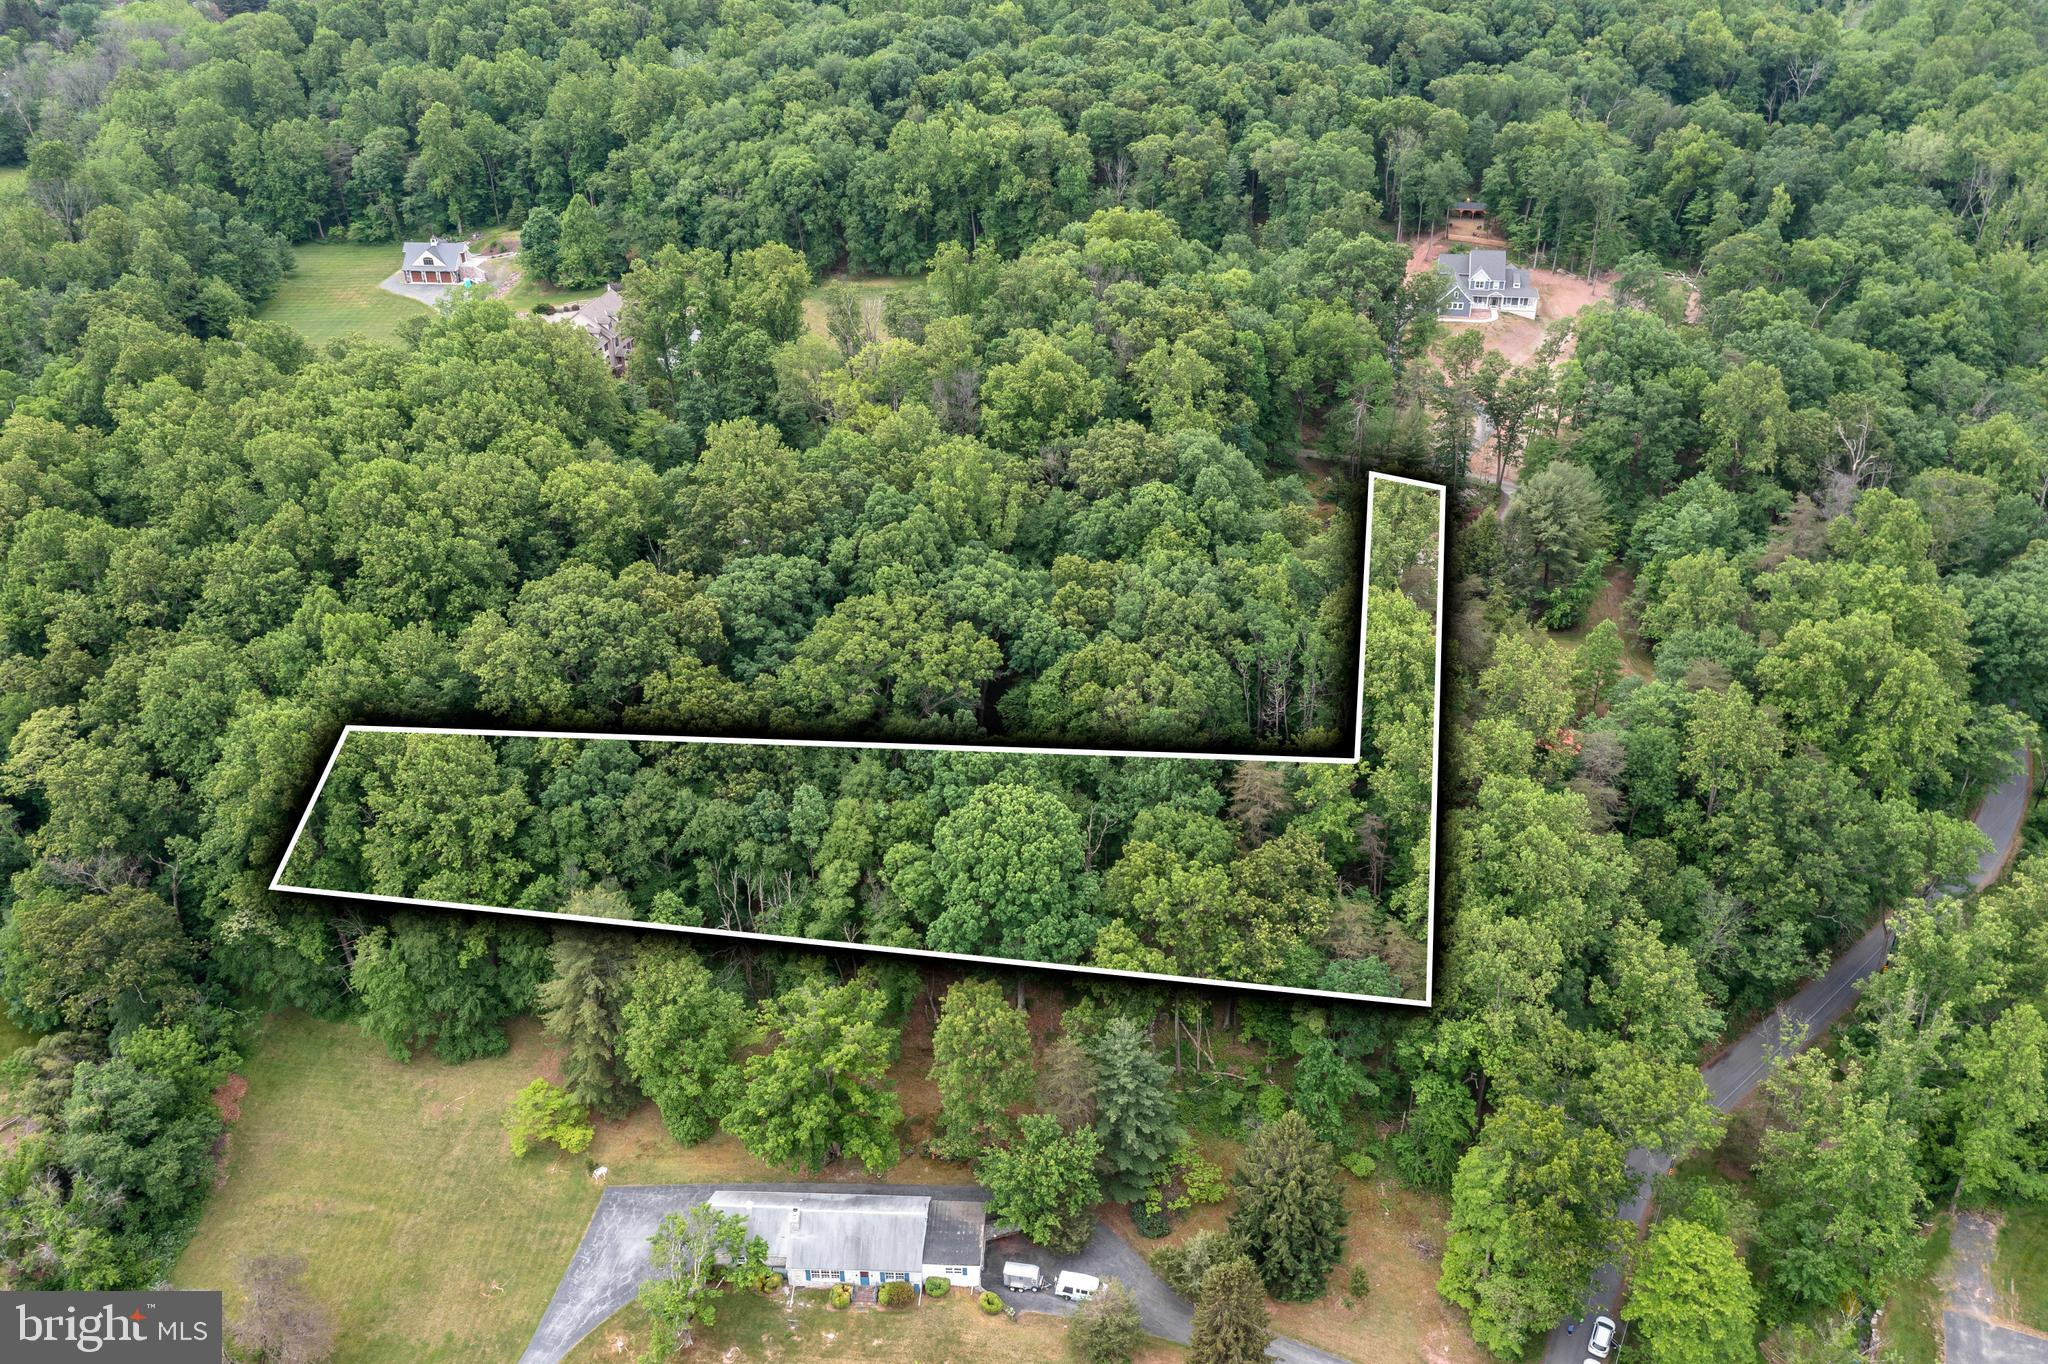 Don't miss this opportunity to build the home of your dreams in North Coventry Township in award winning Owen J Roberts School District!  This beautiful piece of land  is within short walking distance to Coventry Woods Park and open space consisting of 688 acres of mostly mature deciduous forest!  Located on very secluded Evans Road yet close to shopping and schools.